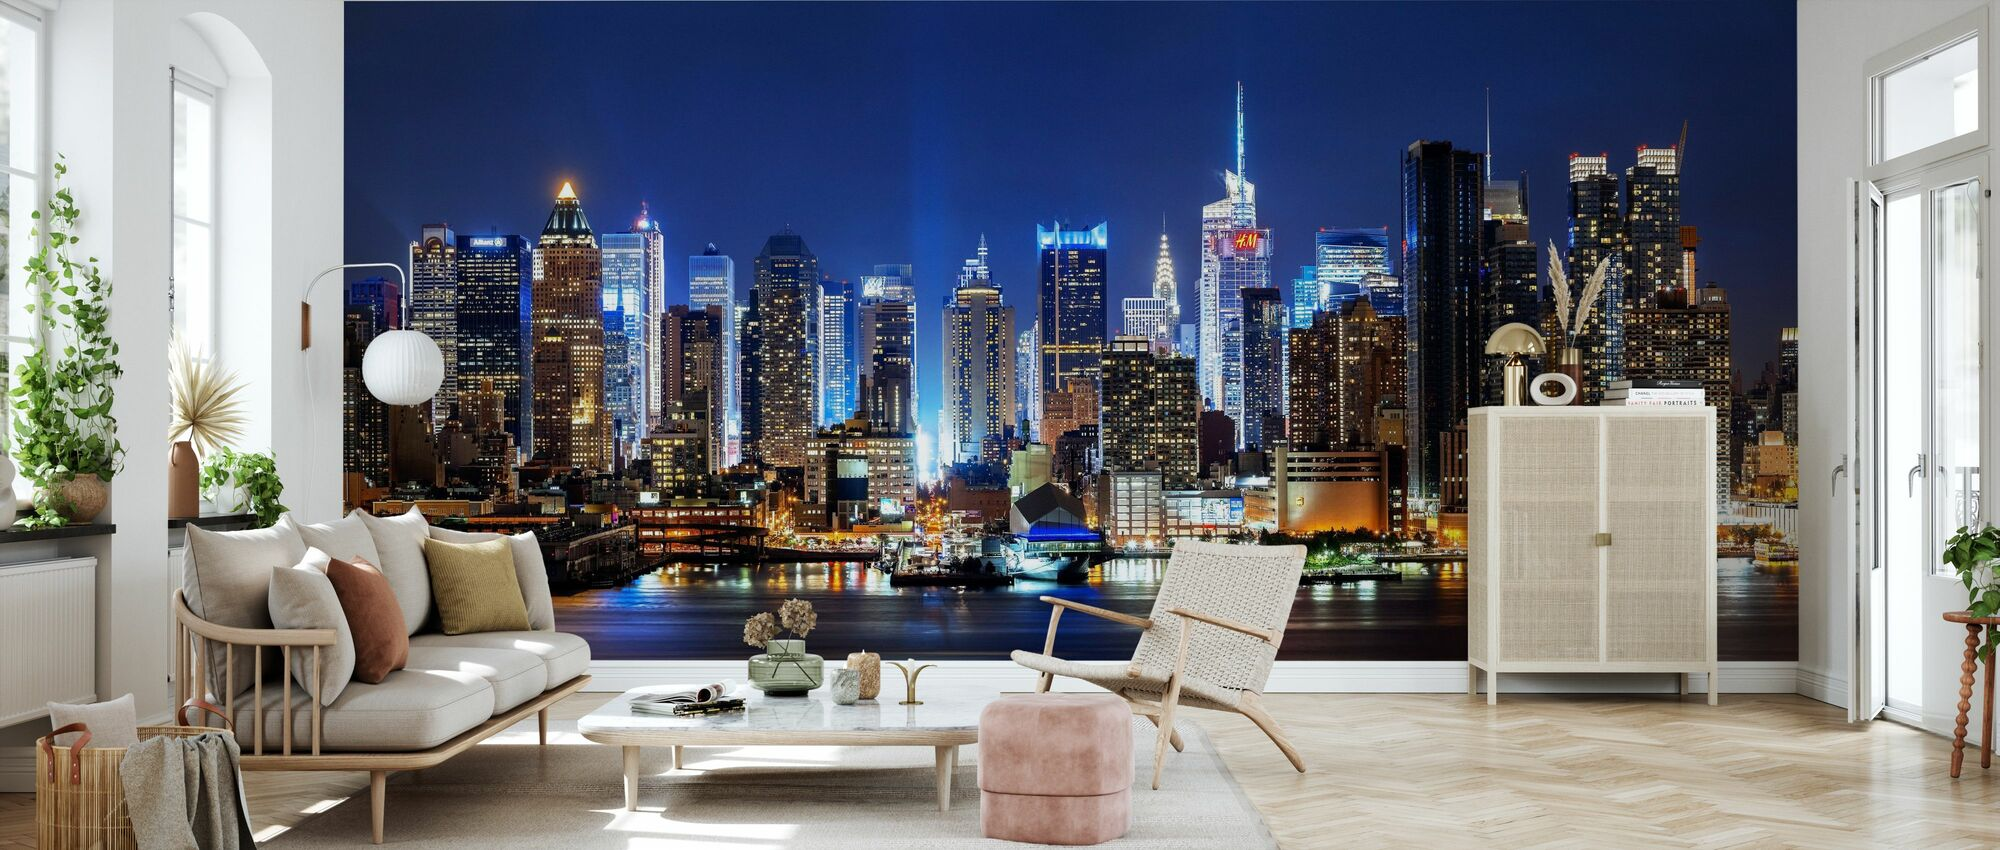 New York Night Skyline - Tapet - Vardagsrum